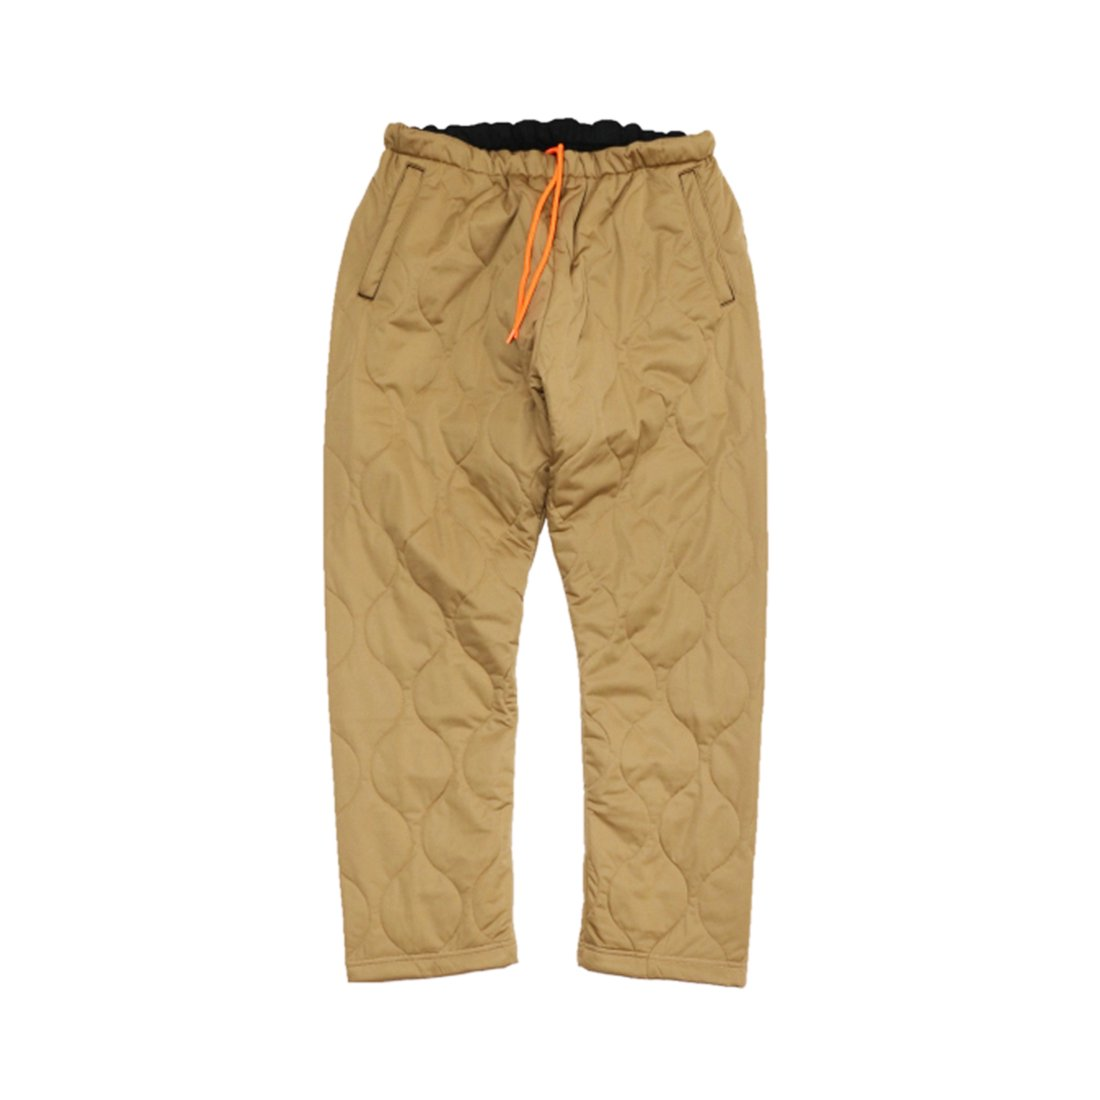 CAPTAINS HELM #Thinsulate LEVEL5 RELAX PANTS -Beige